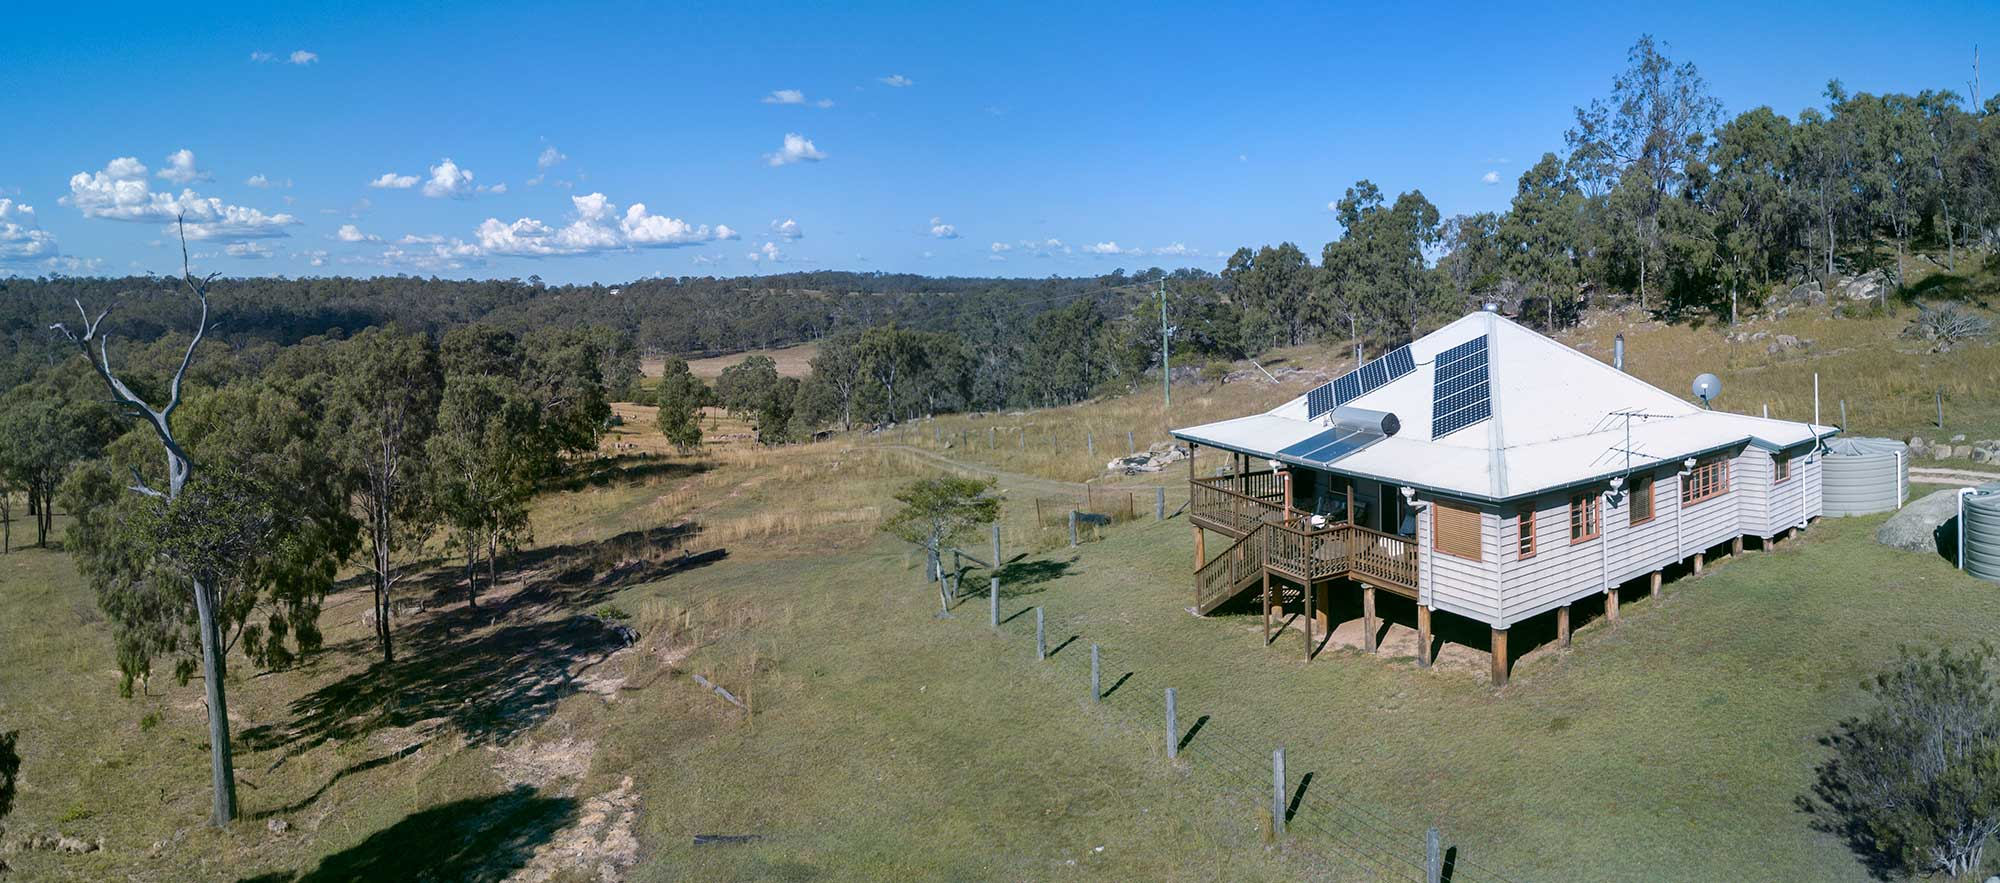 BunyipSprings Farmstay Drone Video - Drone panorama used to capture the location of the Lodge